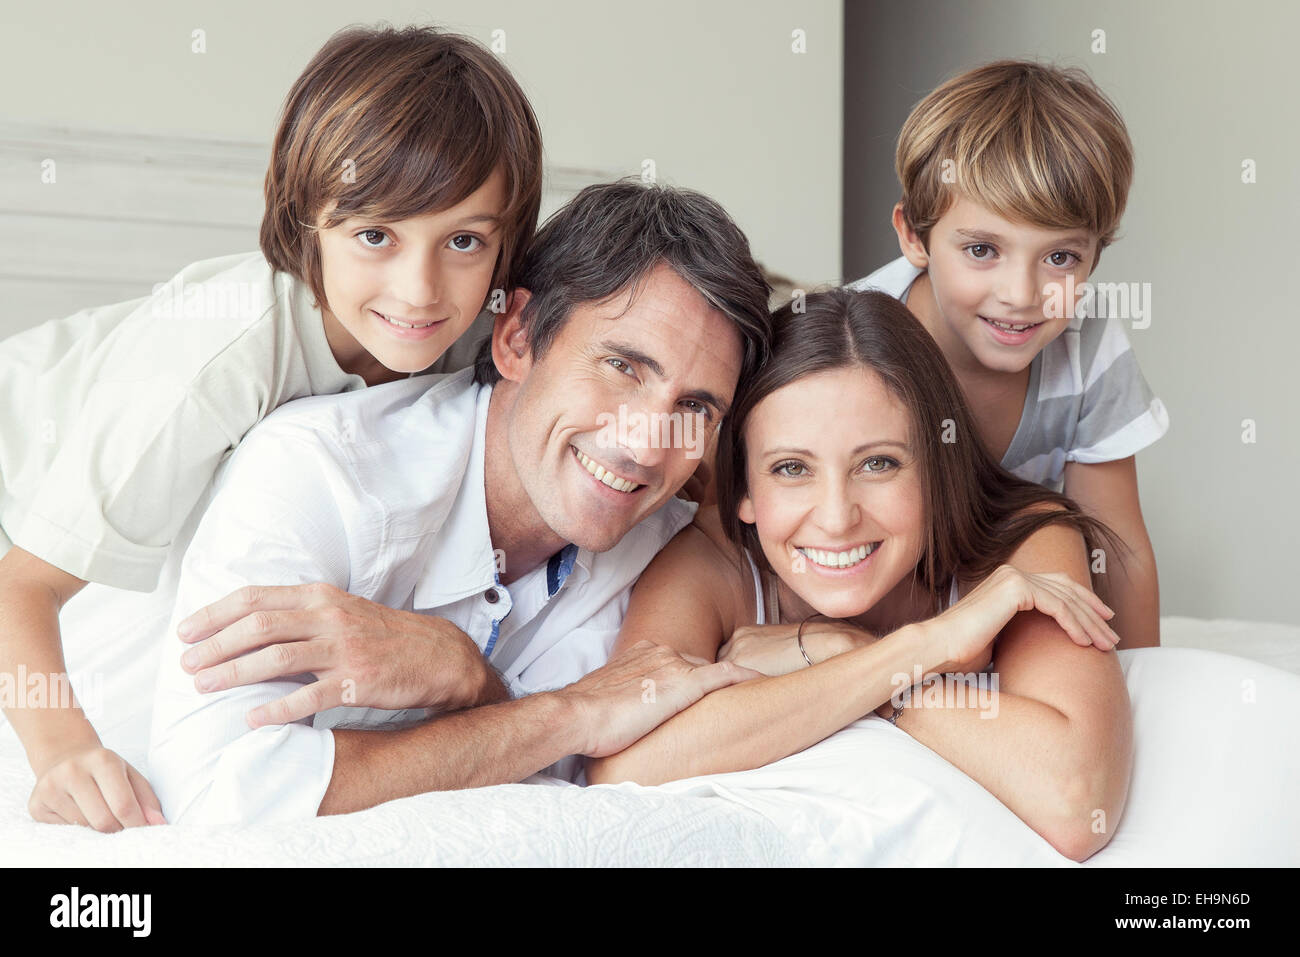 Family lying on bed, portrait Photo Stock